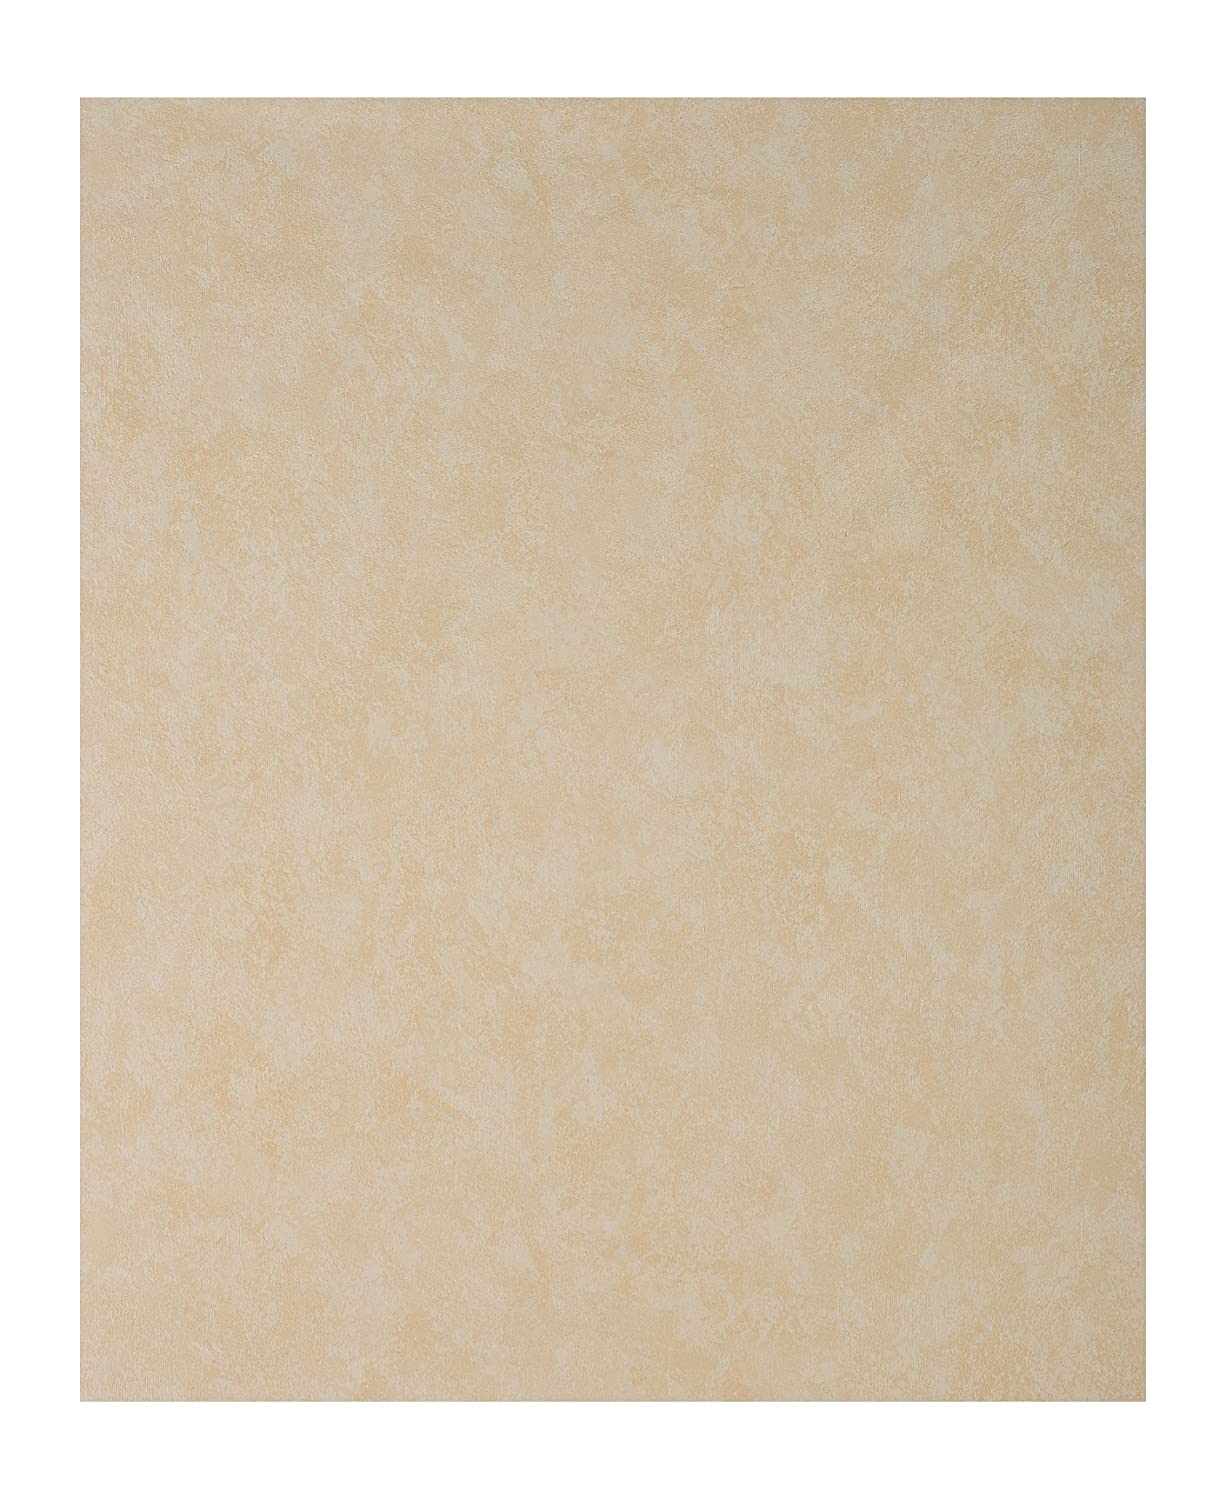 Amazon.com: York Wallcoverings NB192306SMP Color Library Stuccoed Texture 8 x 10 Wallpaper Memo Sample, Pastel Peach: Home Improvement